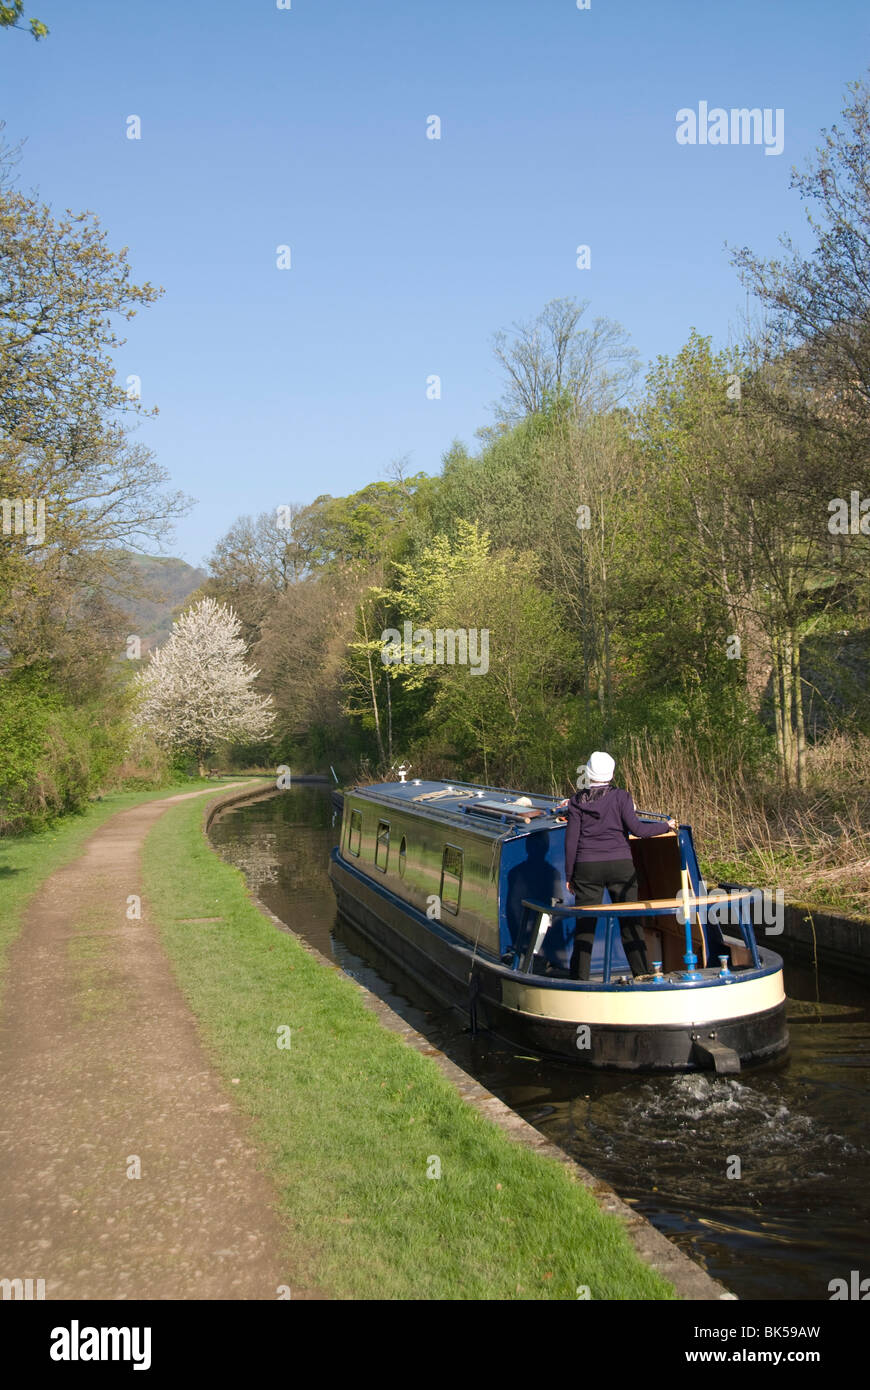 A cruising narrow boat on the Llangollen Canal, Wales, United Kingdom, Europe - Stock Image